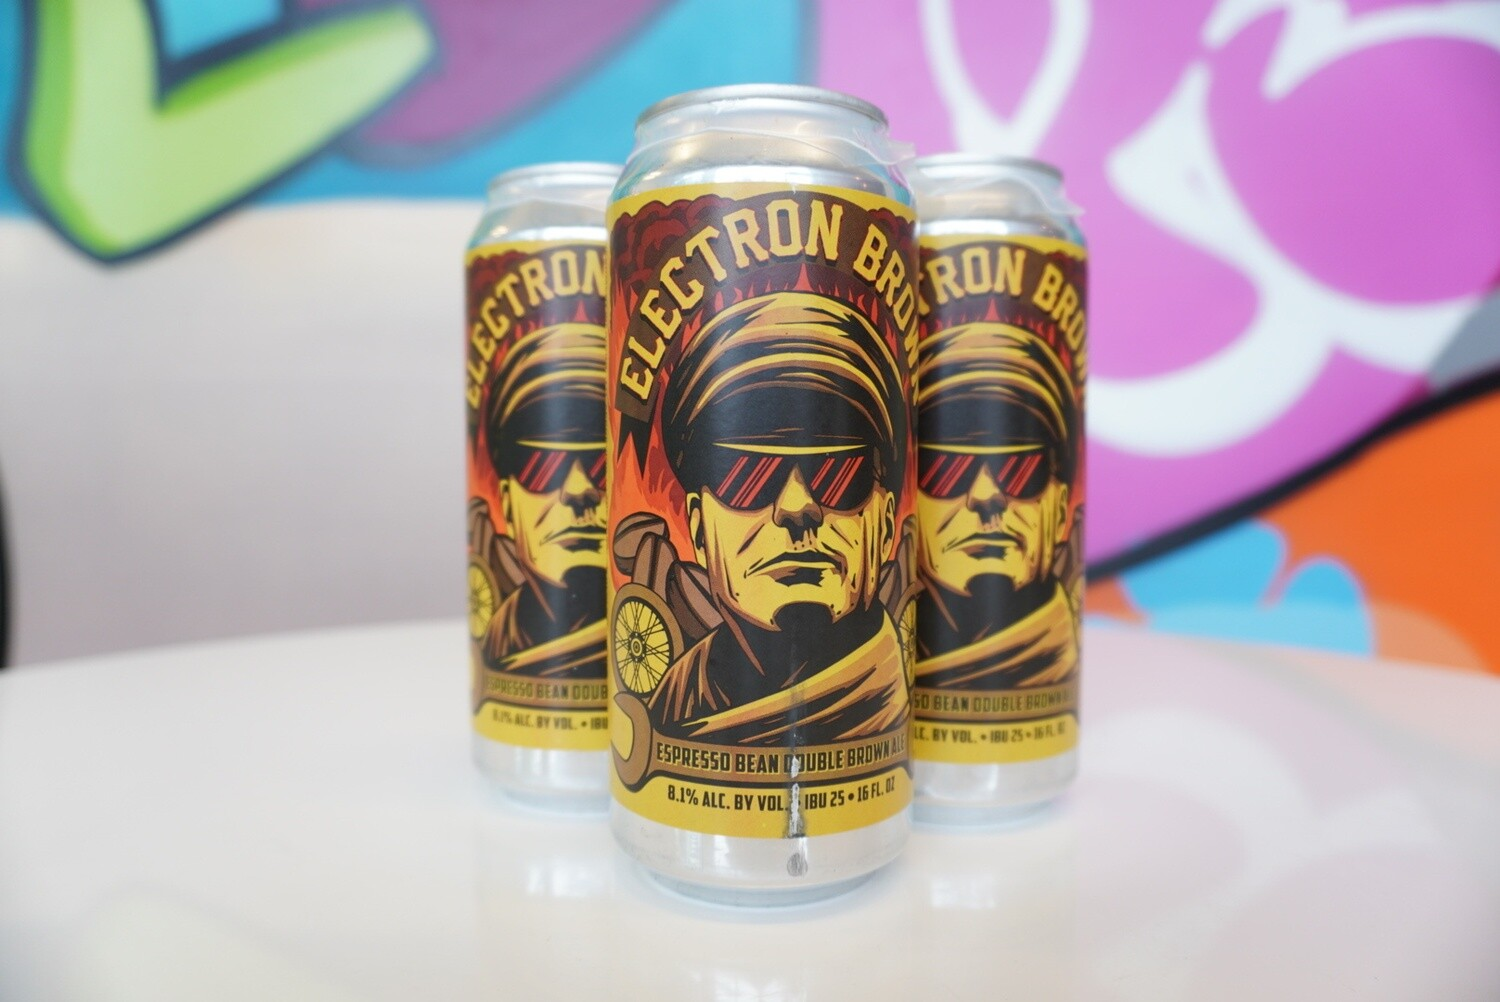 Old Nation - Electron Brown - Brown Ale - 7% ABV - 4 Pack